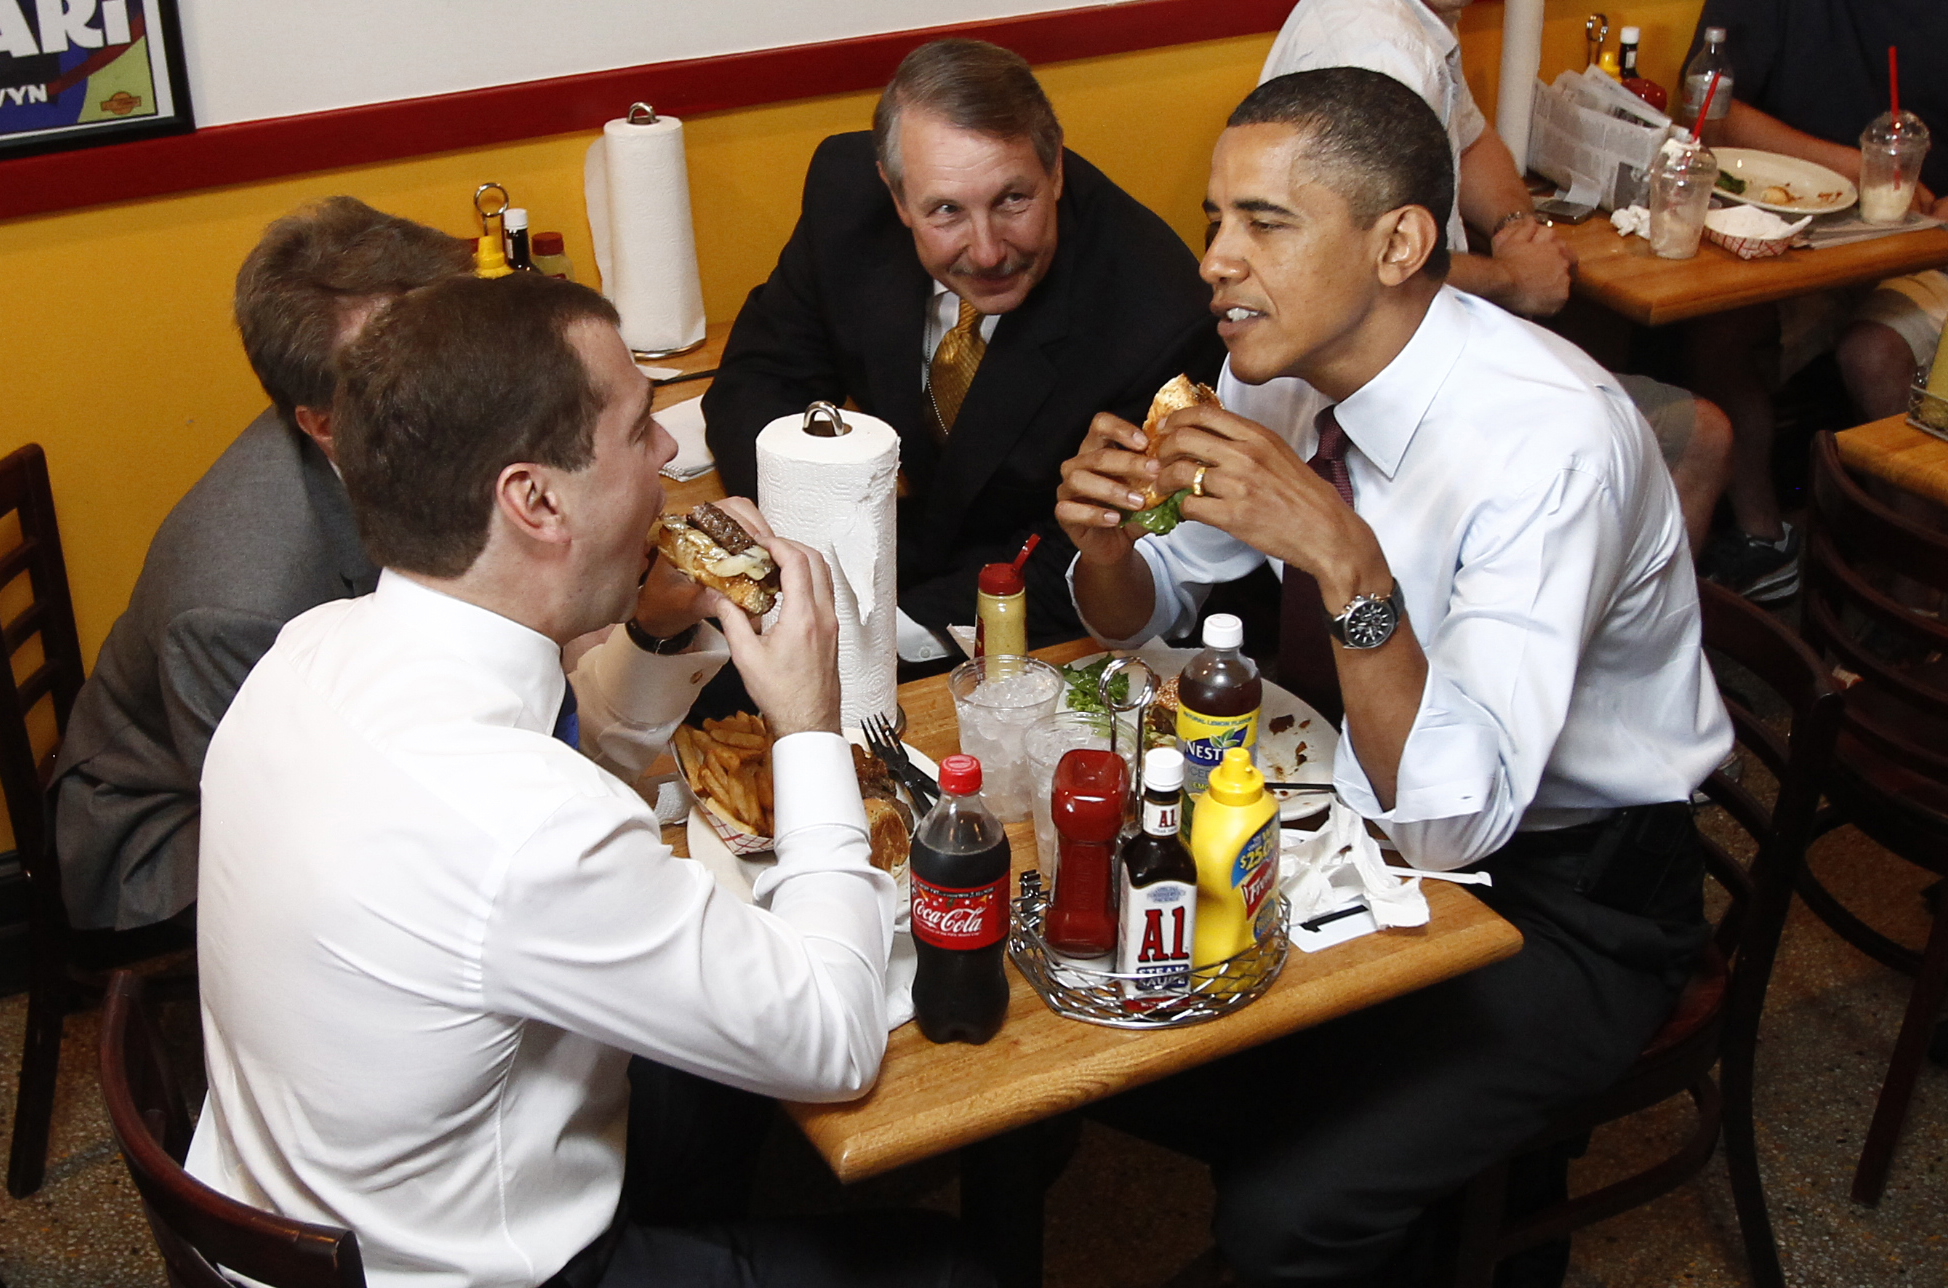 Barack Obama and Russia's President Dmitry Medvedev have burgers at Ray's Hell Burger restaurant in Arlington, Virginia, June 24, 2010.